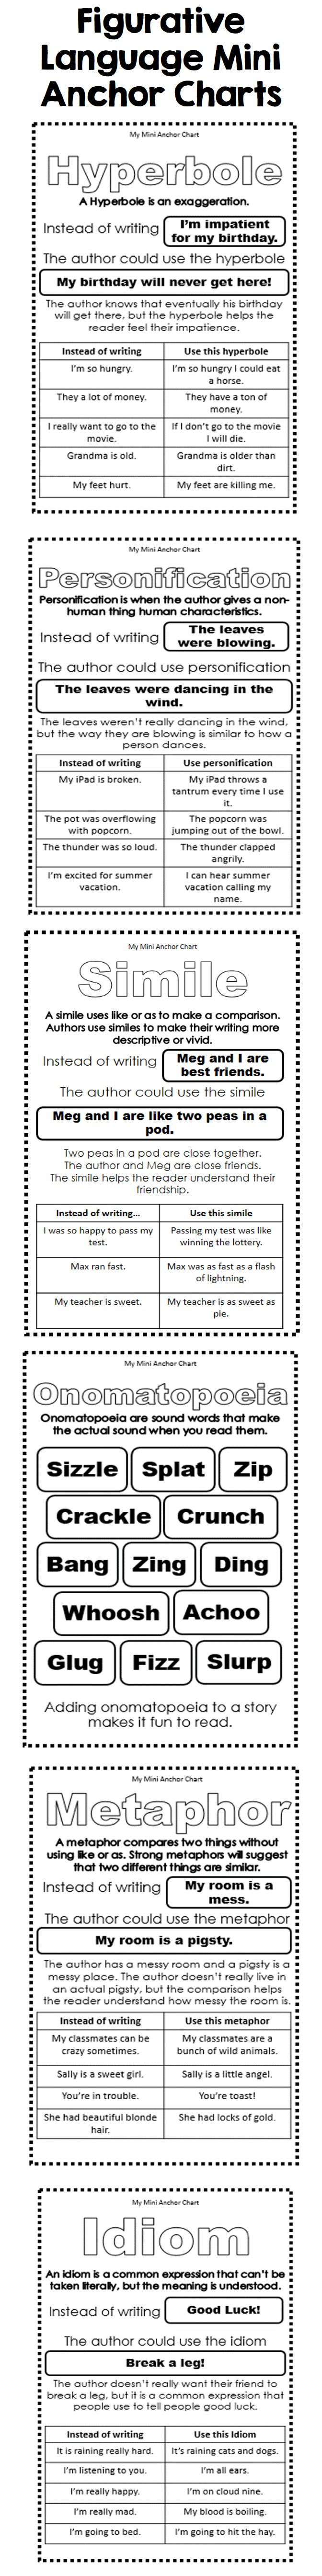 give example of personification best ideas about simile similes  best ideas about simile similes and metaphors product includes mini anchor charts for similes metaphors personification